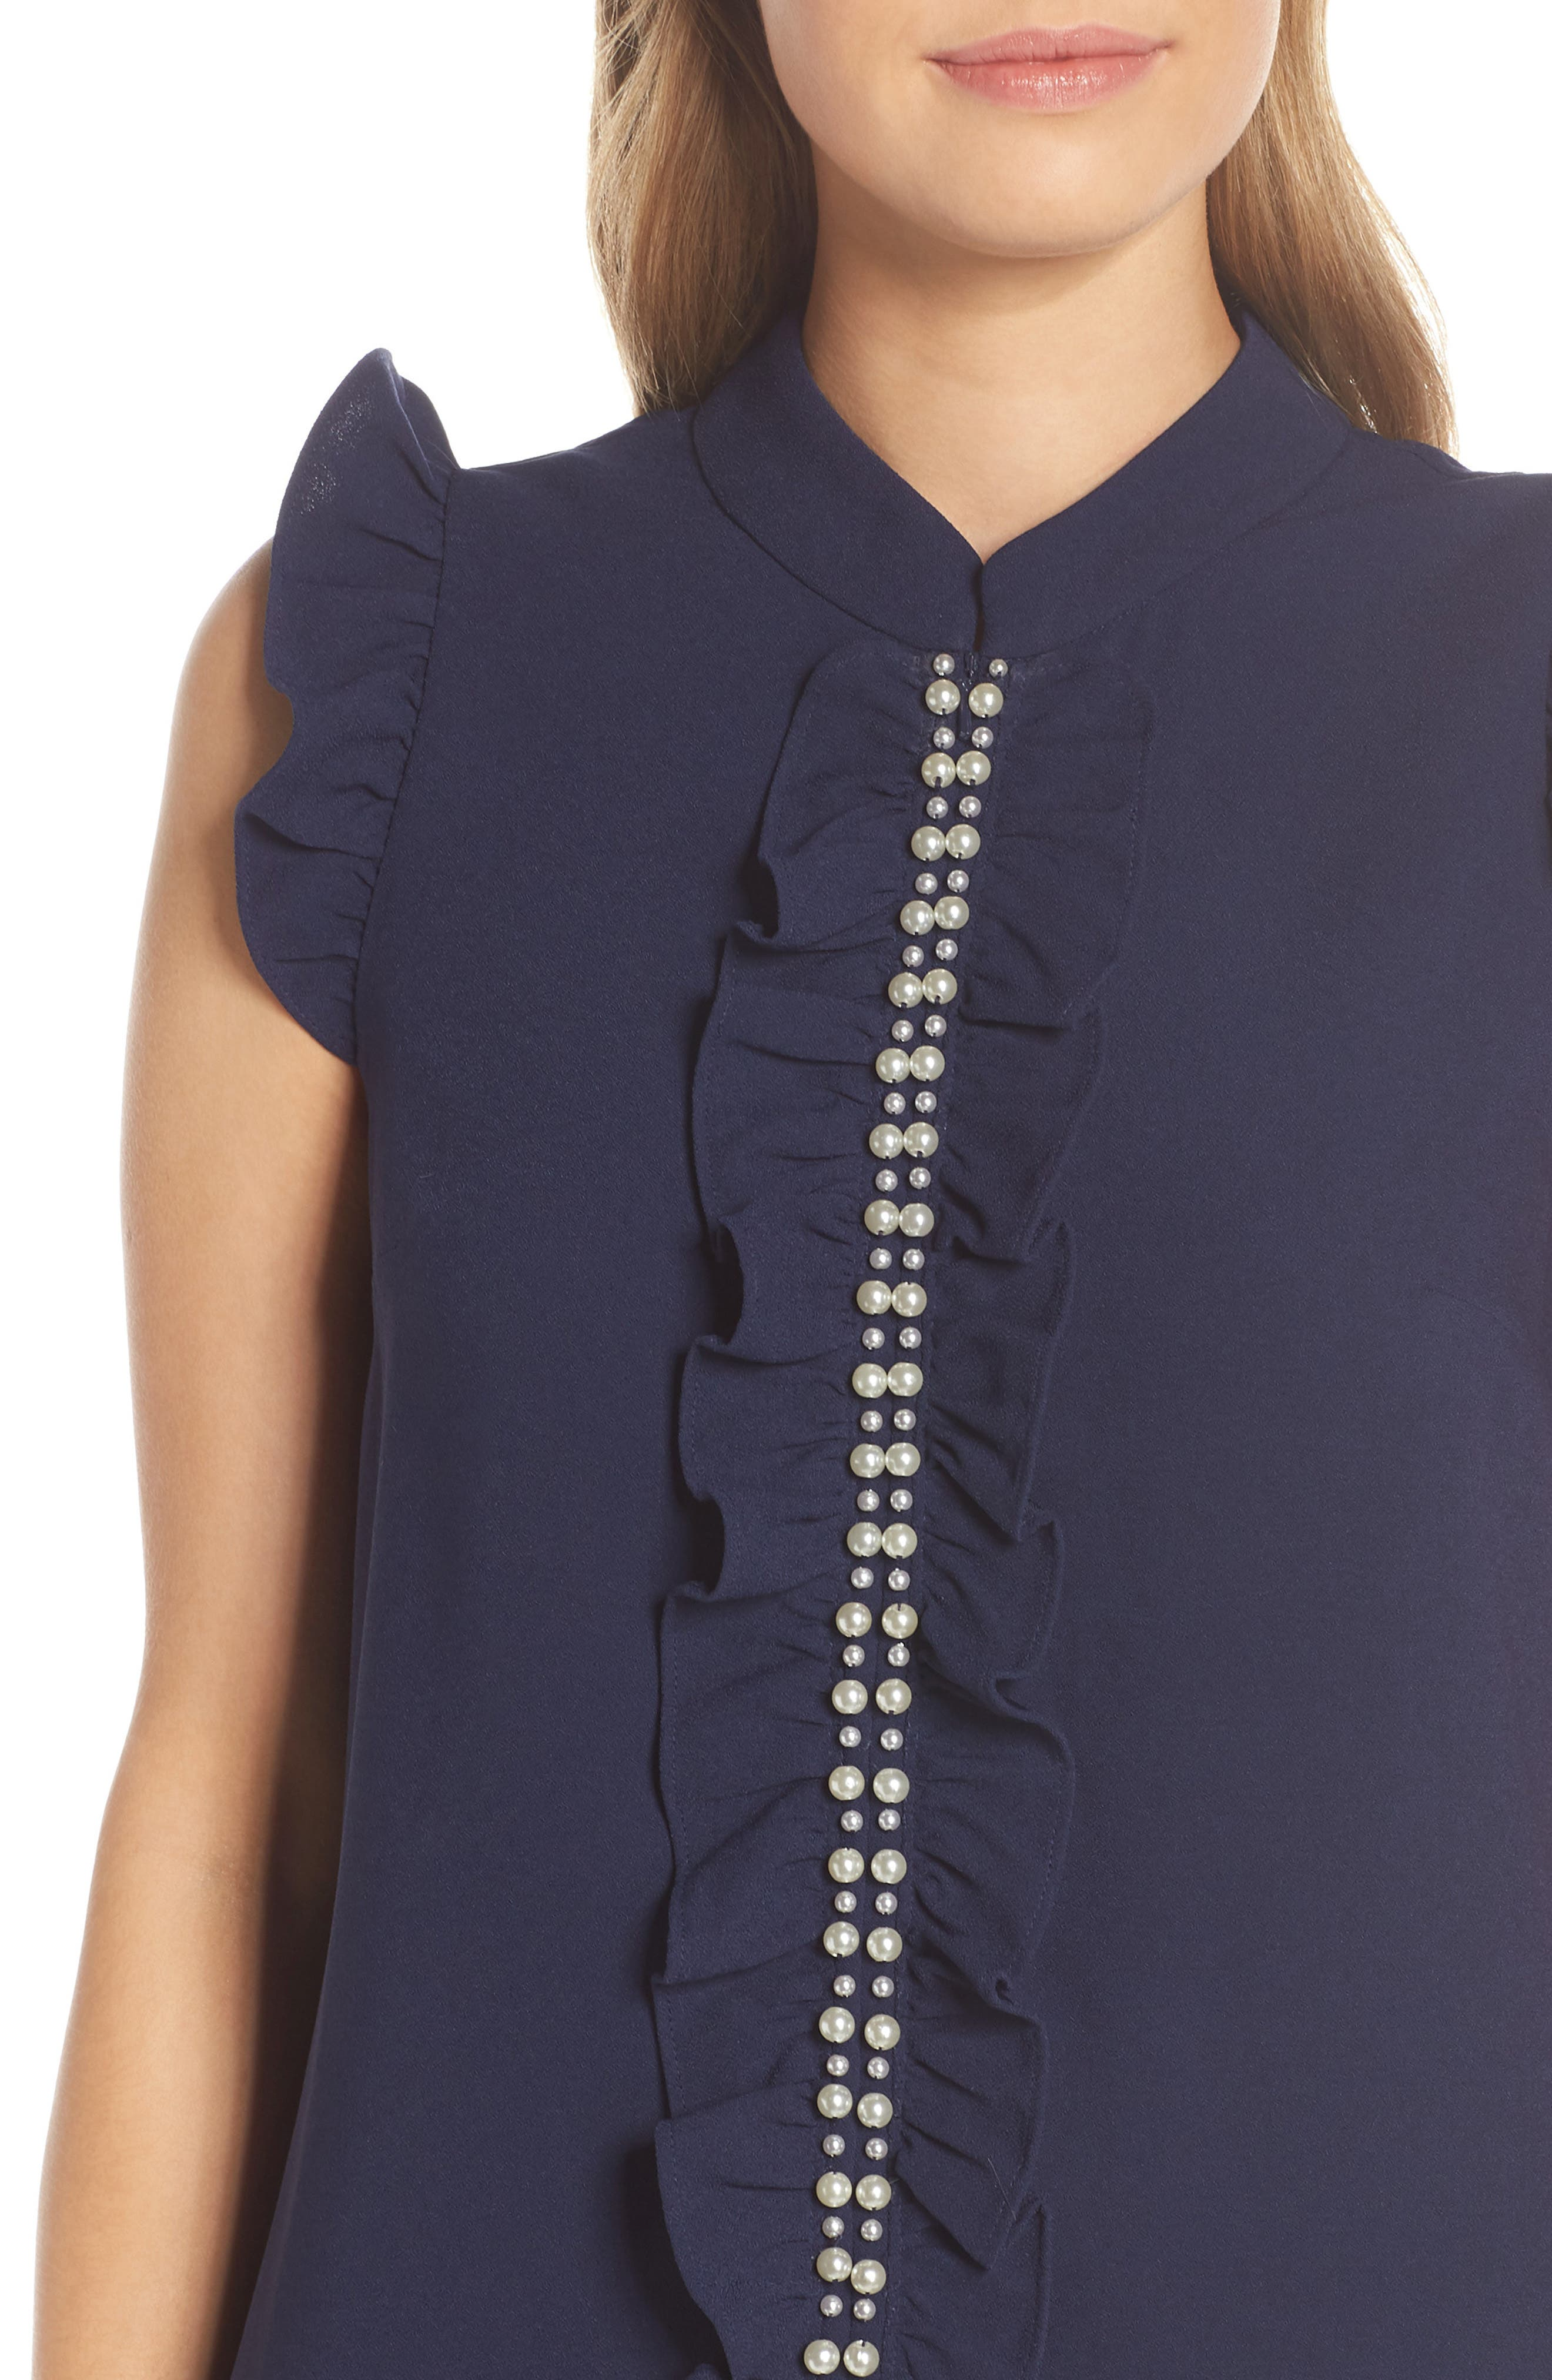 LILLY PULITZER<SUP>®</SUP>, Adalee Shift Dress, Alternate thumbnail 4, color, TRUE NAVY